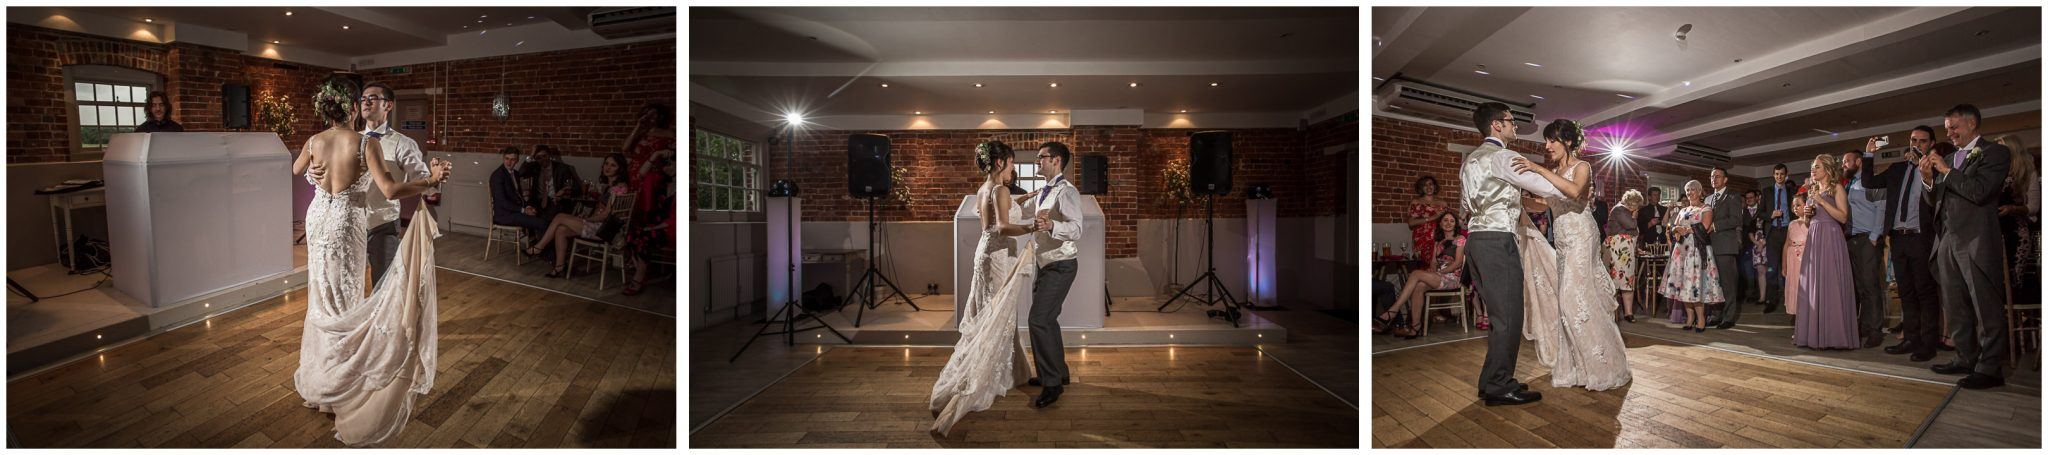 Sopley Mill wedding photography couple first dance